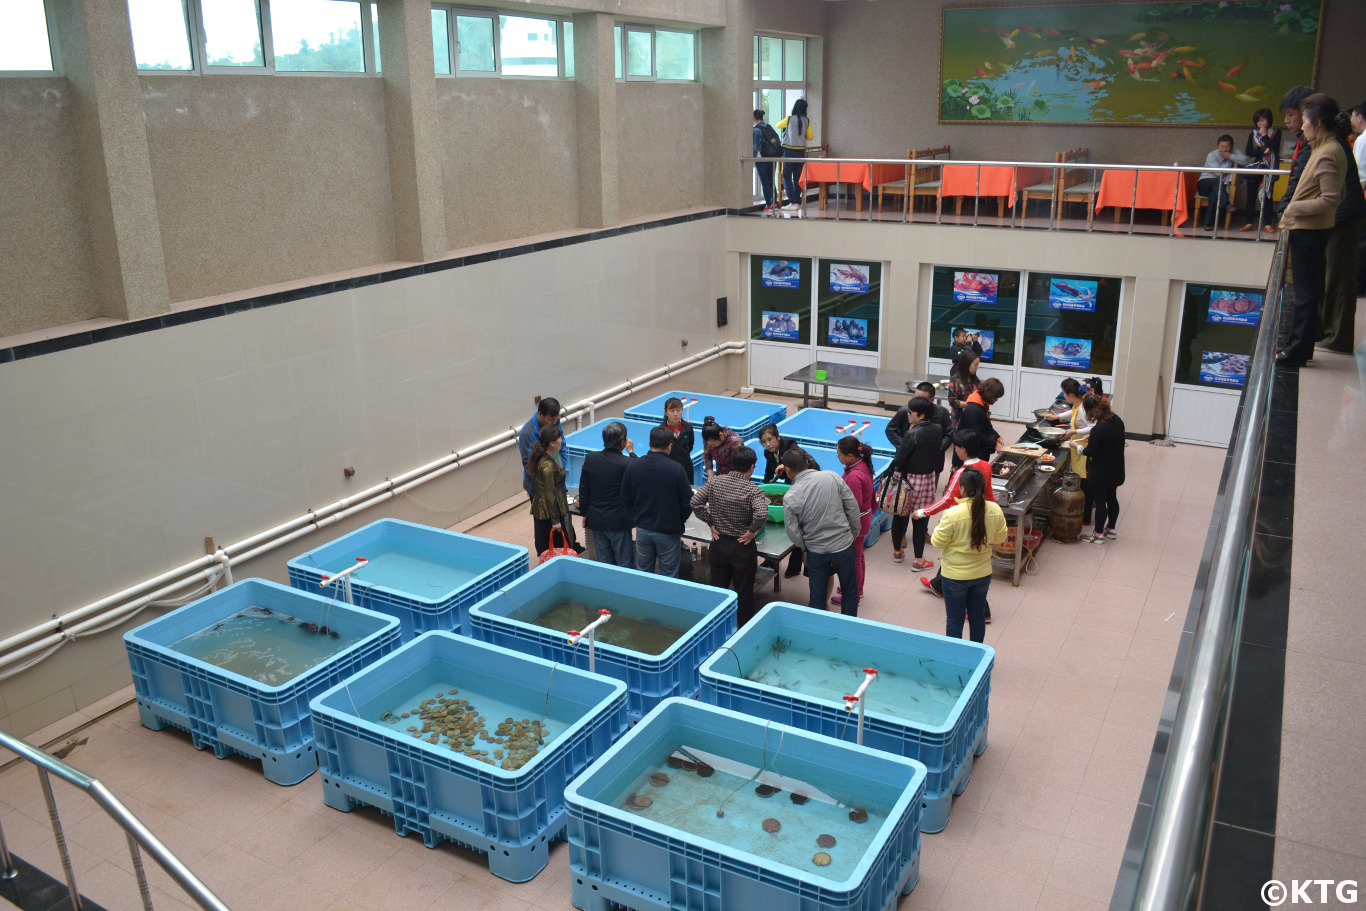 Travellers picking their food at the Taehung Rason Corporation in Rajin, DPRK (North Korea). KTG Tours